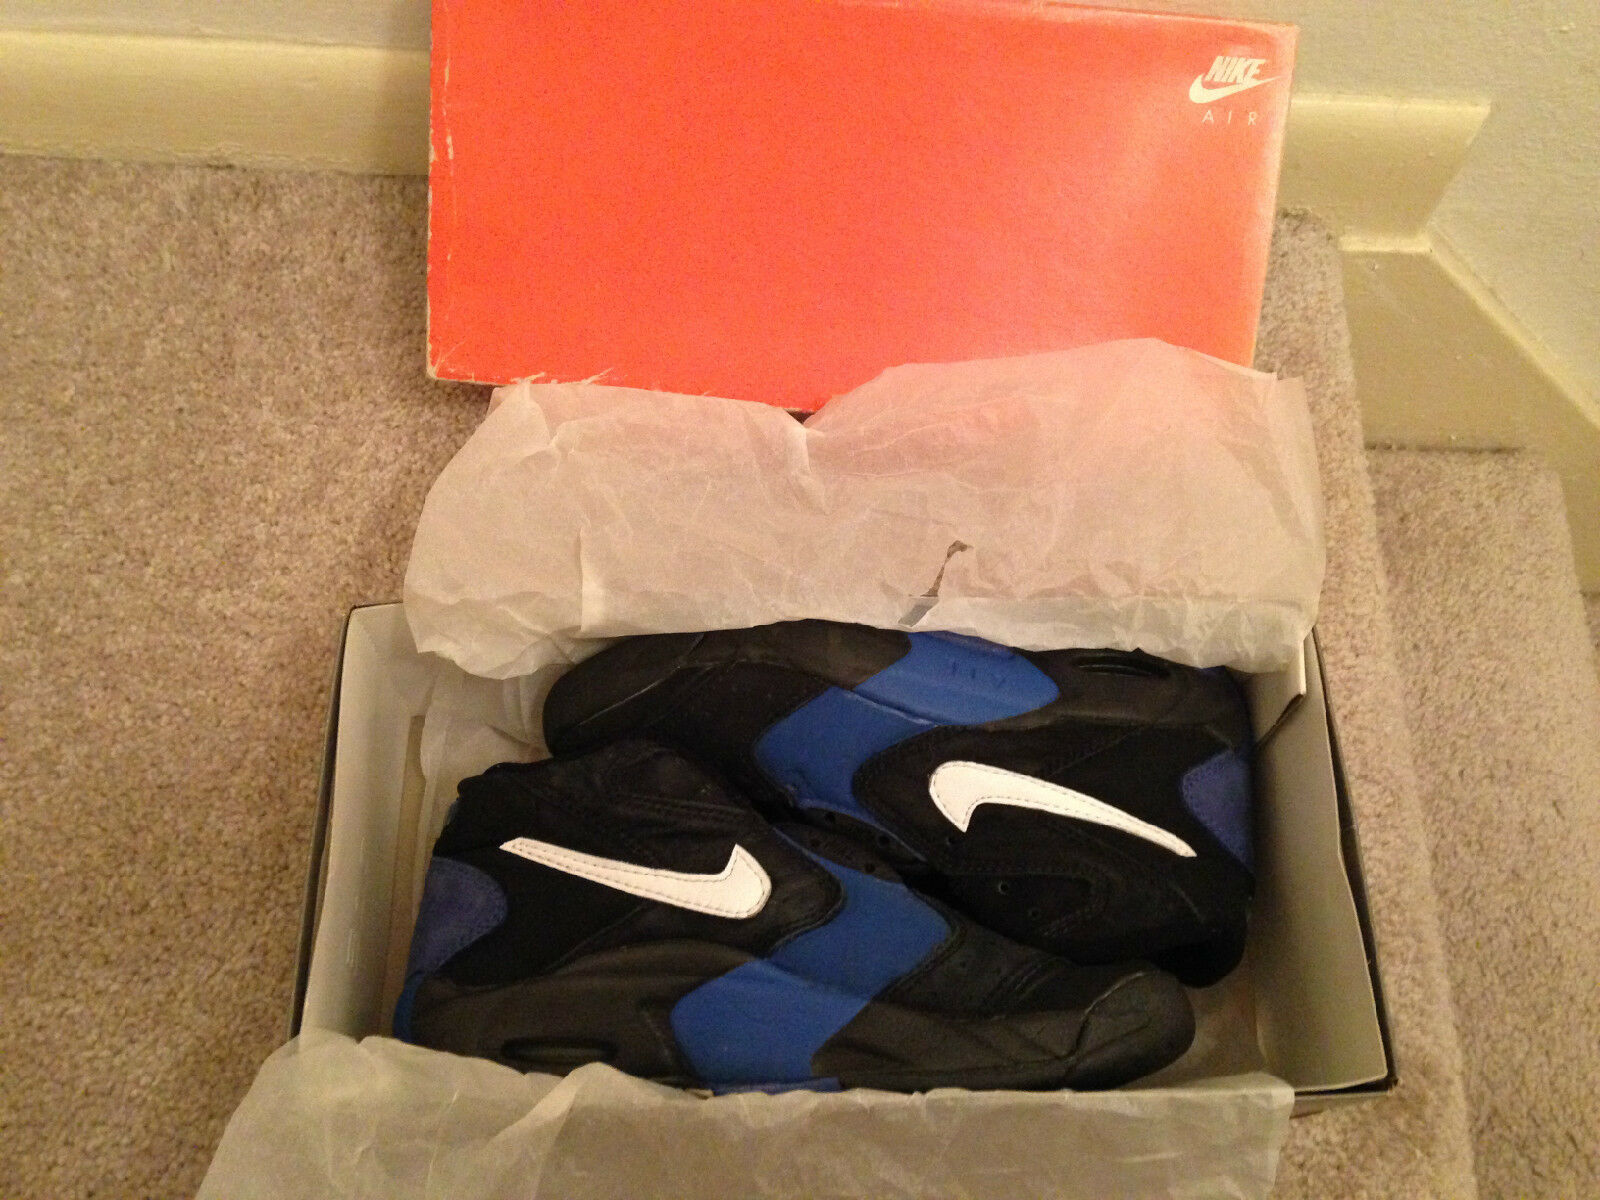 Super Rare Vintage 1995 Original OG Nike Air Up Penny Hardaway sz 8.5 shoes